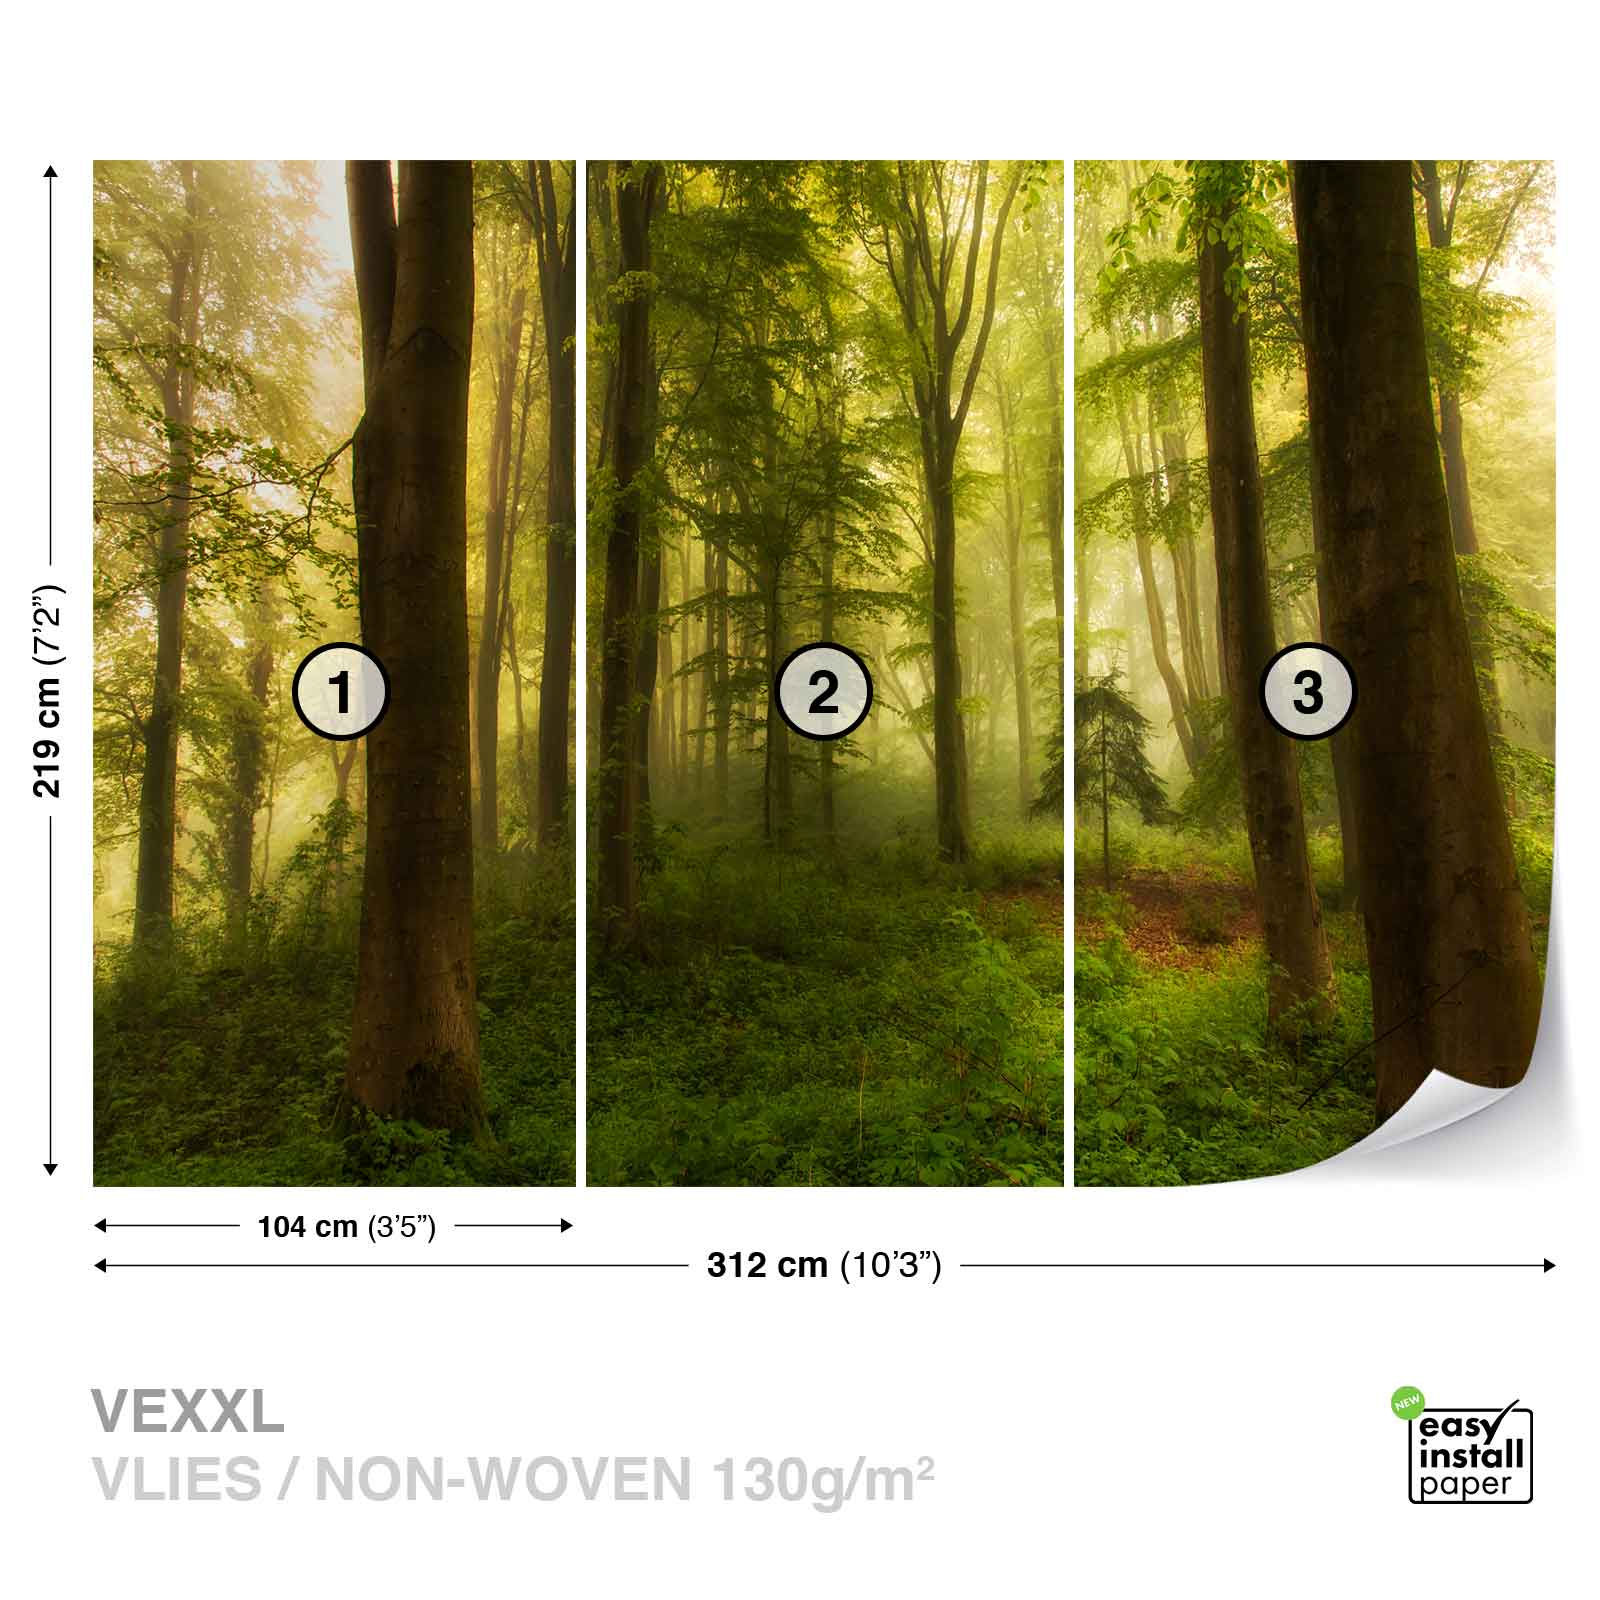 fototapete vlies fotomural xxl wald tannicht hain natur baumstamm 1x 1140641ws ebay. Black Bedroom Furniture Sets. Home Design Ideas